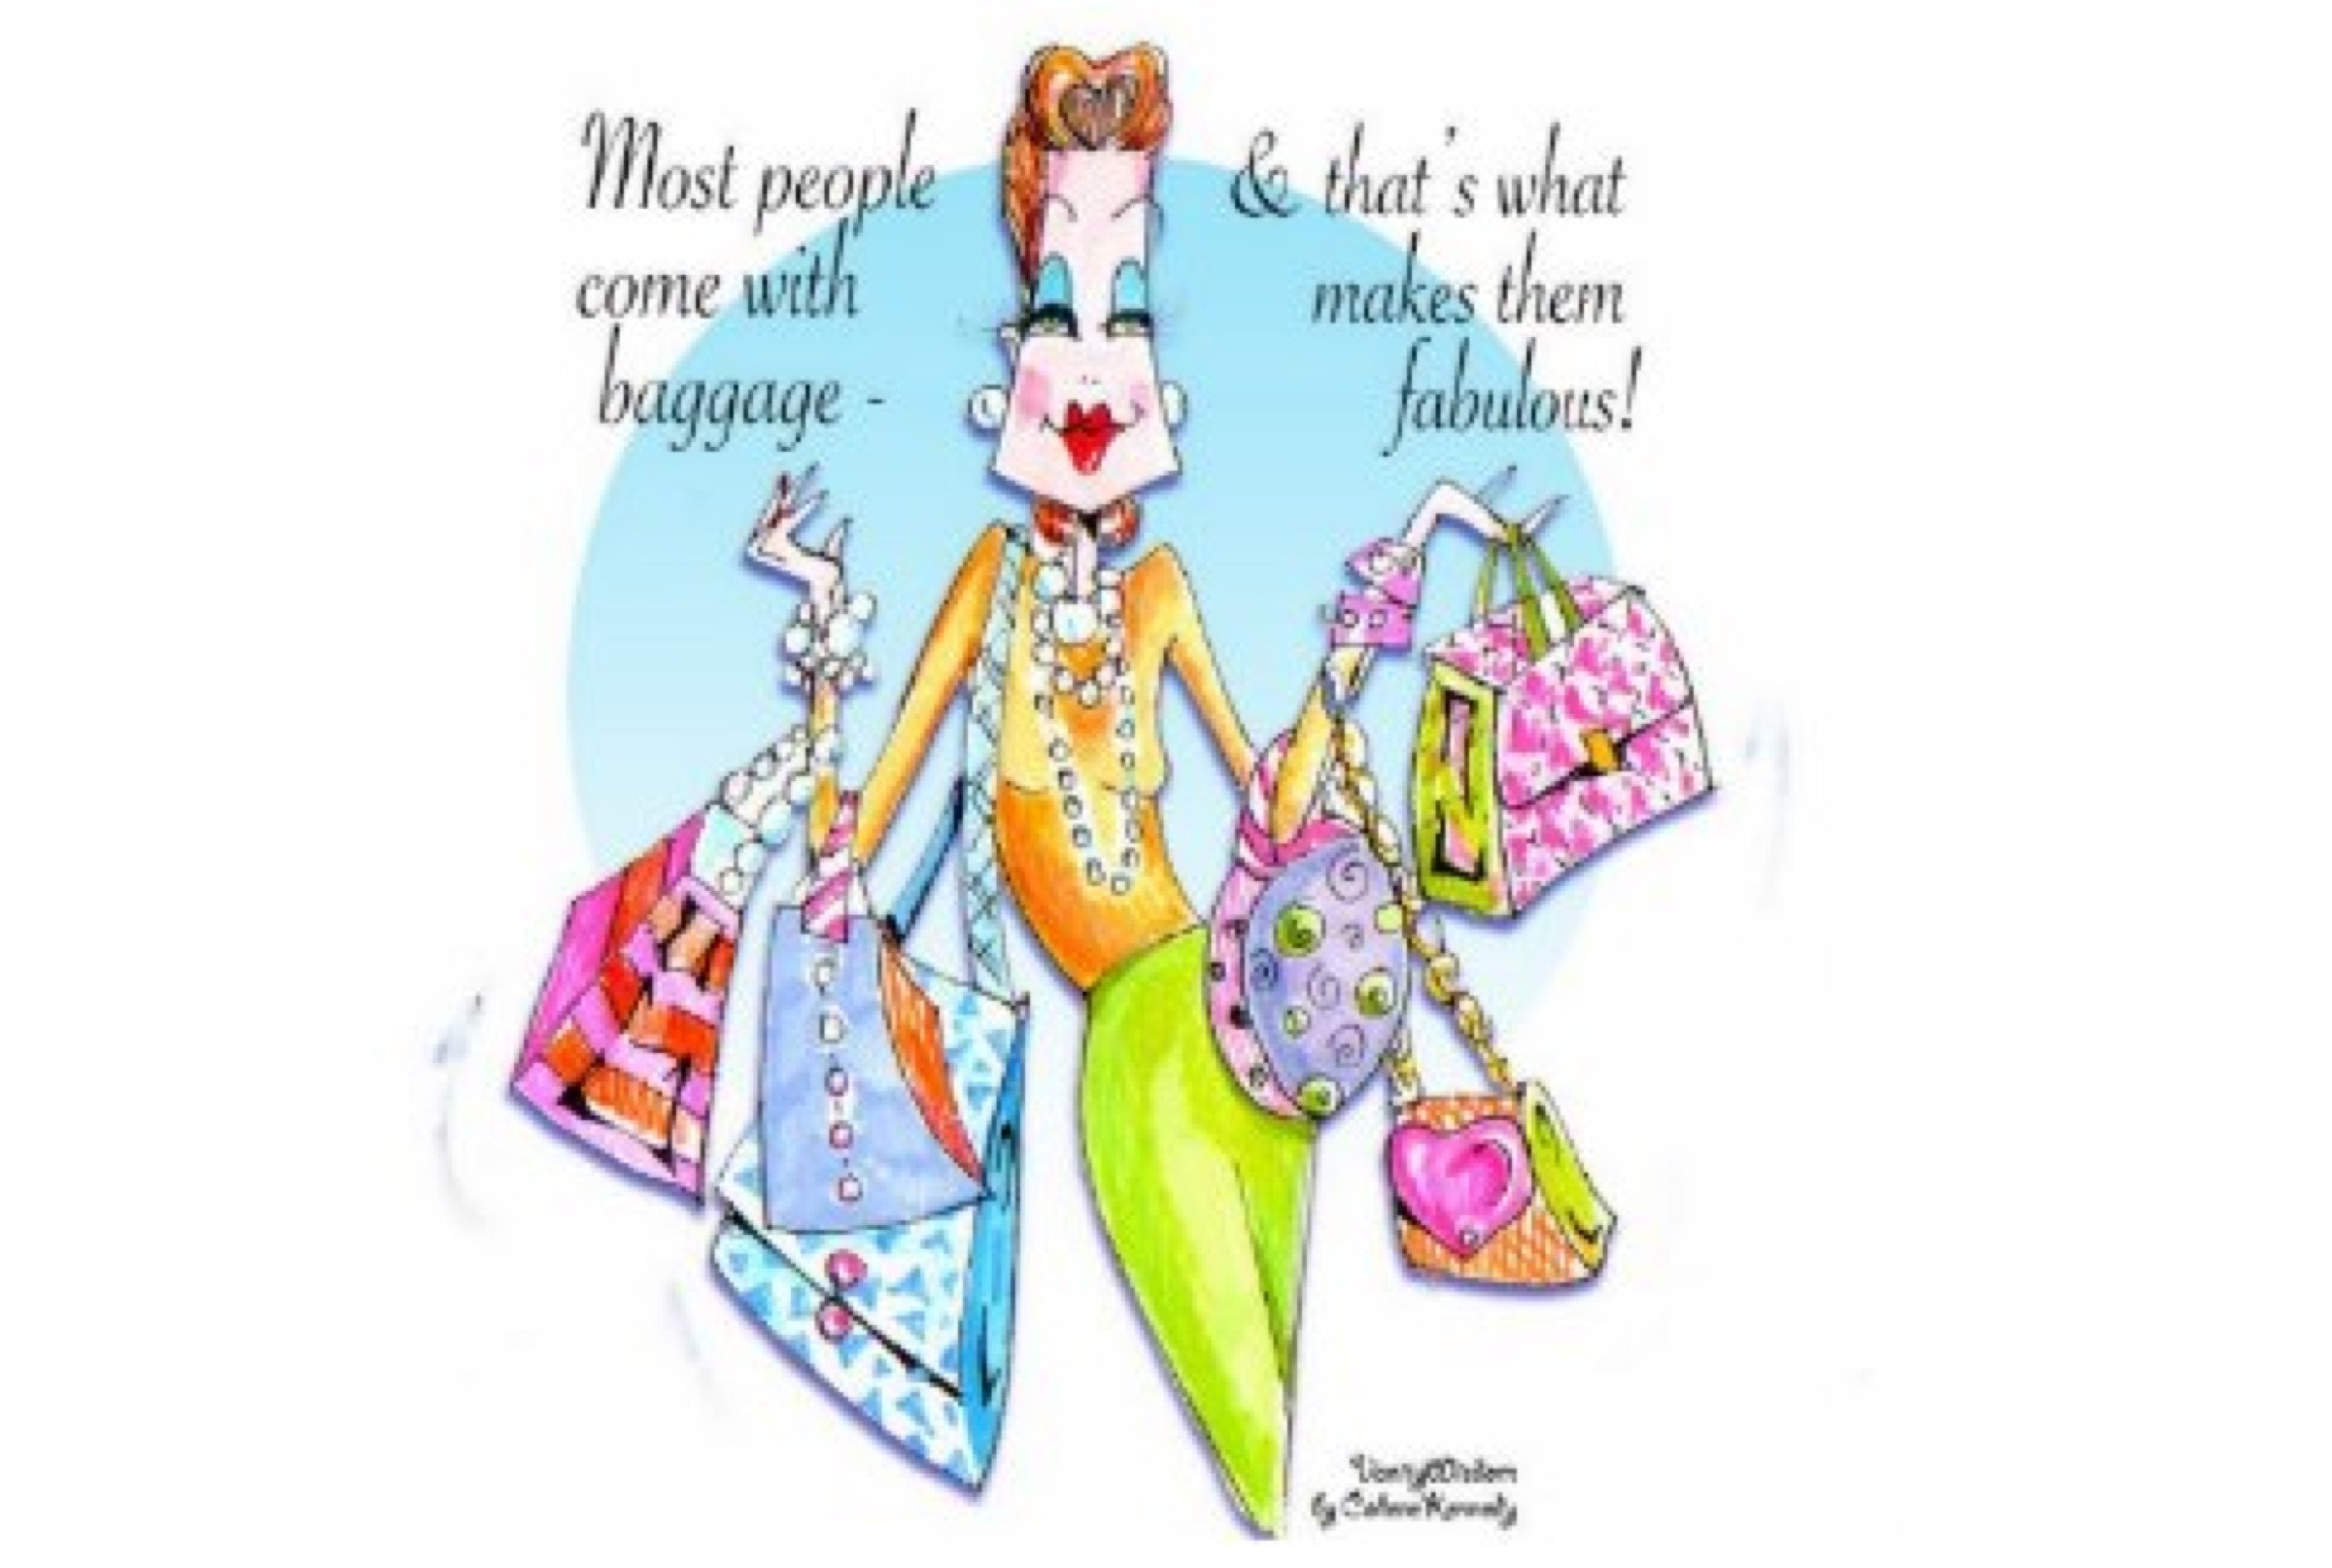 Handbag Heaven Party, Purse Theme Party Planning Ideas & Supplies